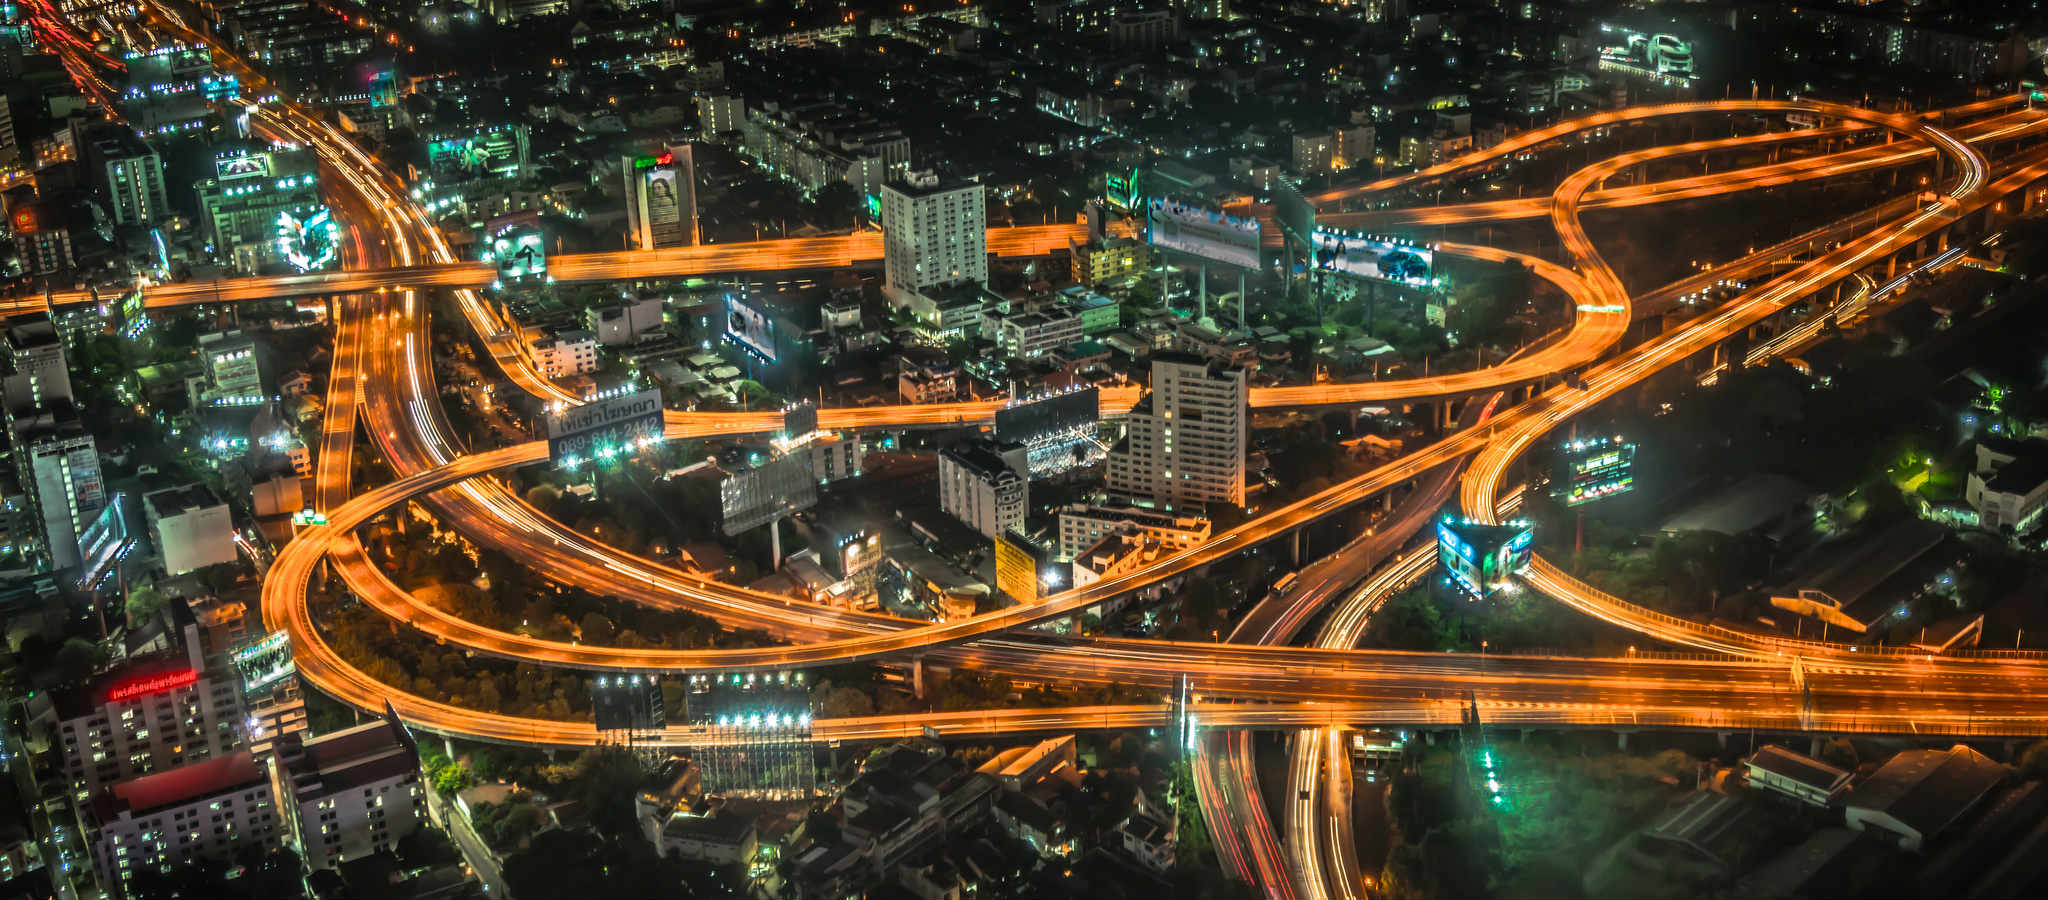 Illuminated highways at night in Bangkok, from the 84th floor of the Baiyoke Sky in Bangkok